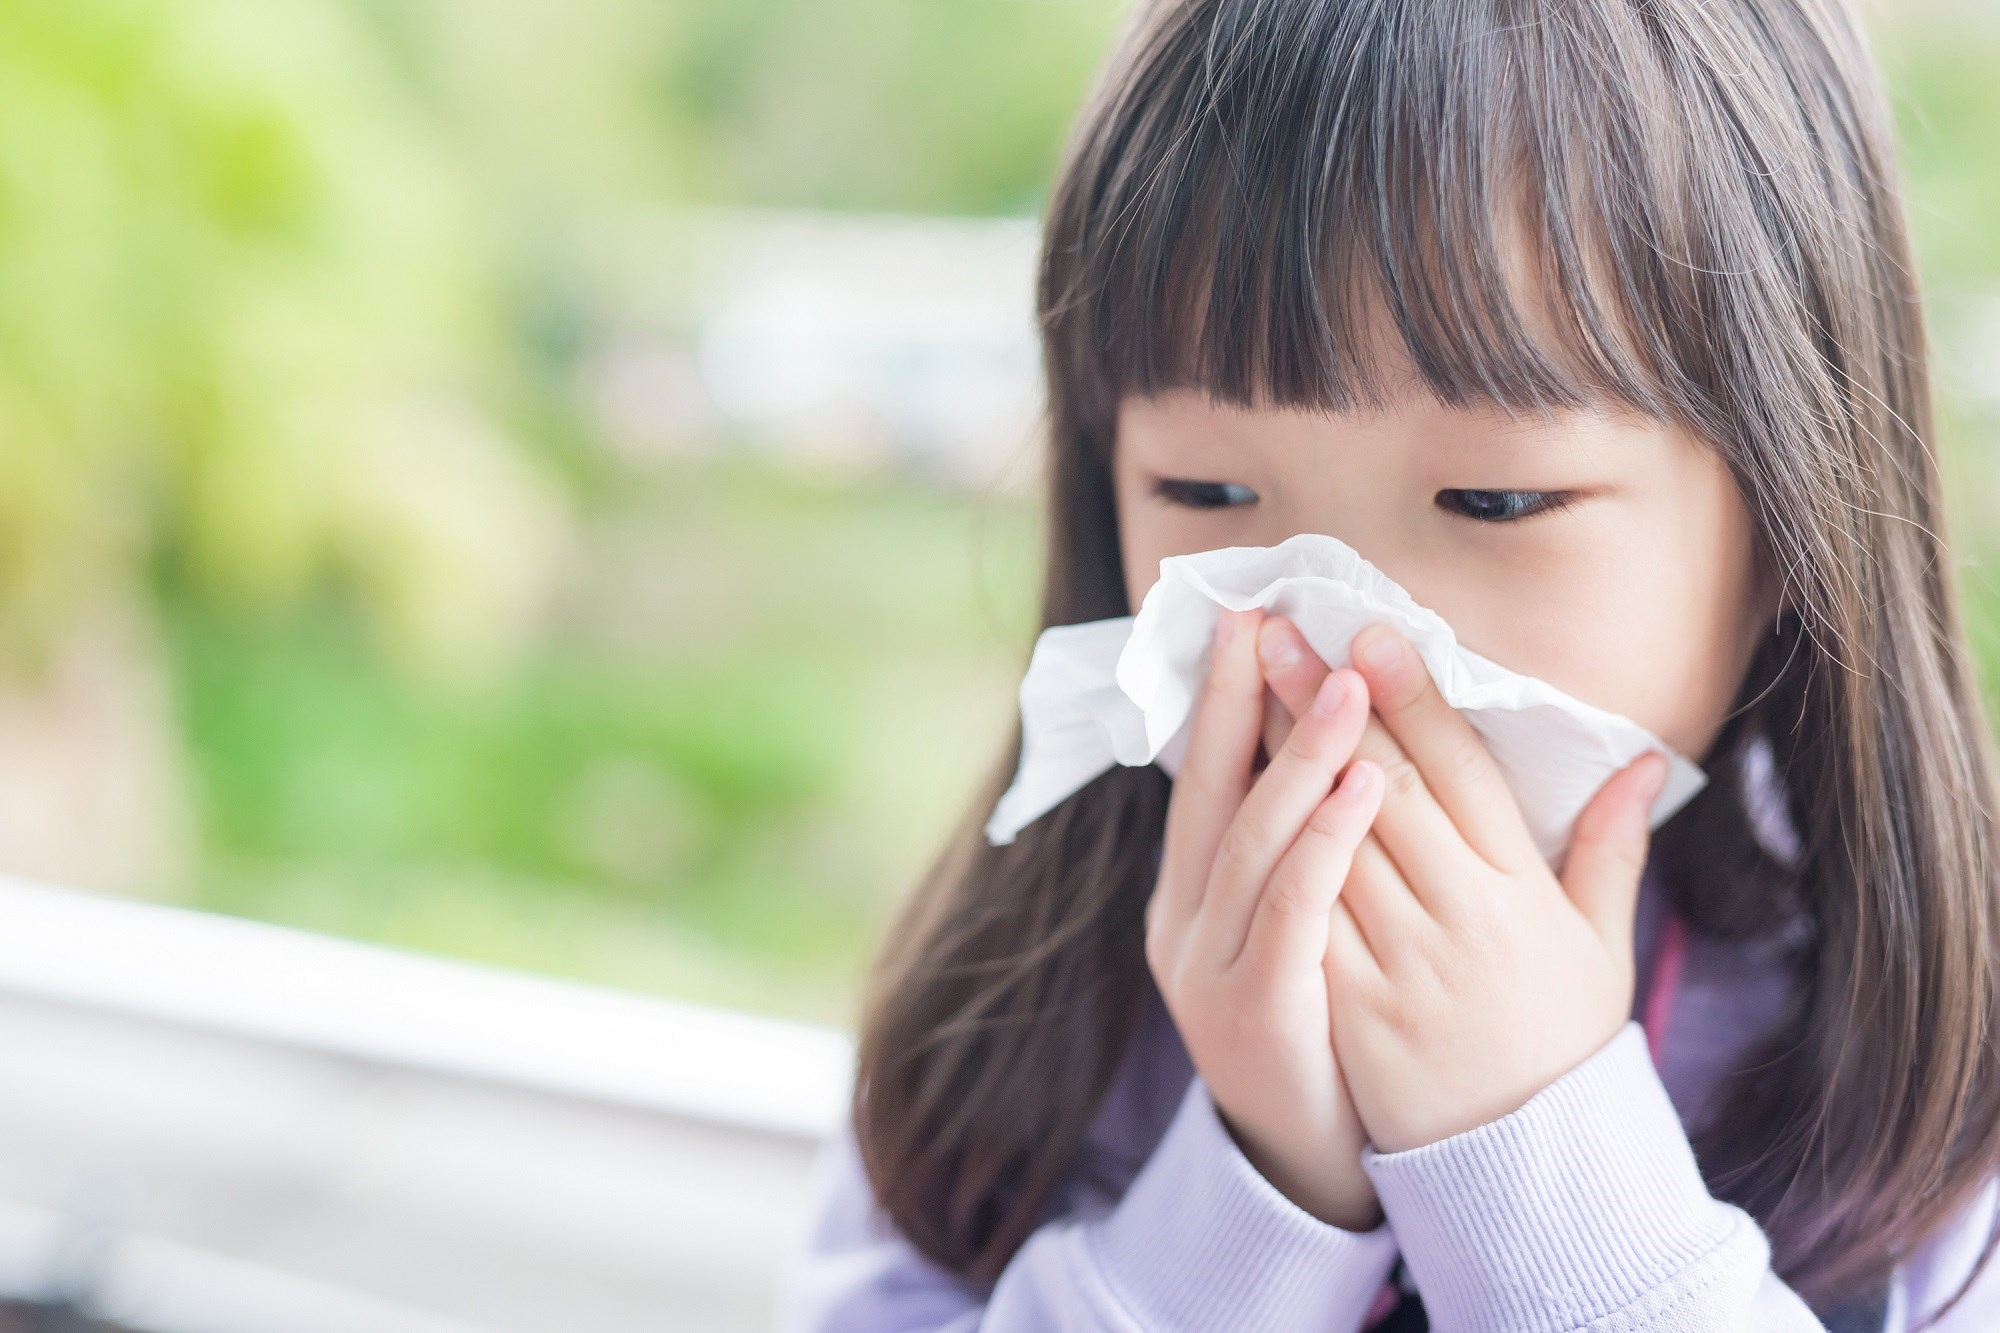 Allergy, But Not Asthma, Risk Increased in Children of East Asian Descent